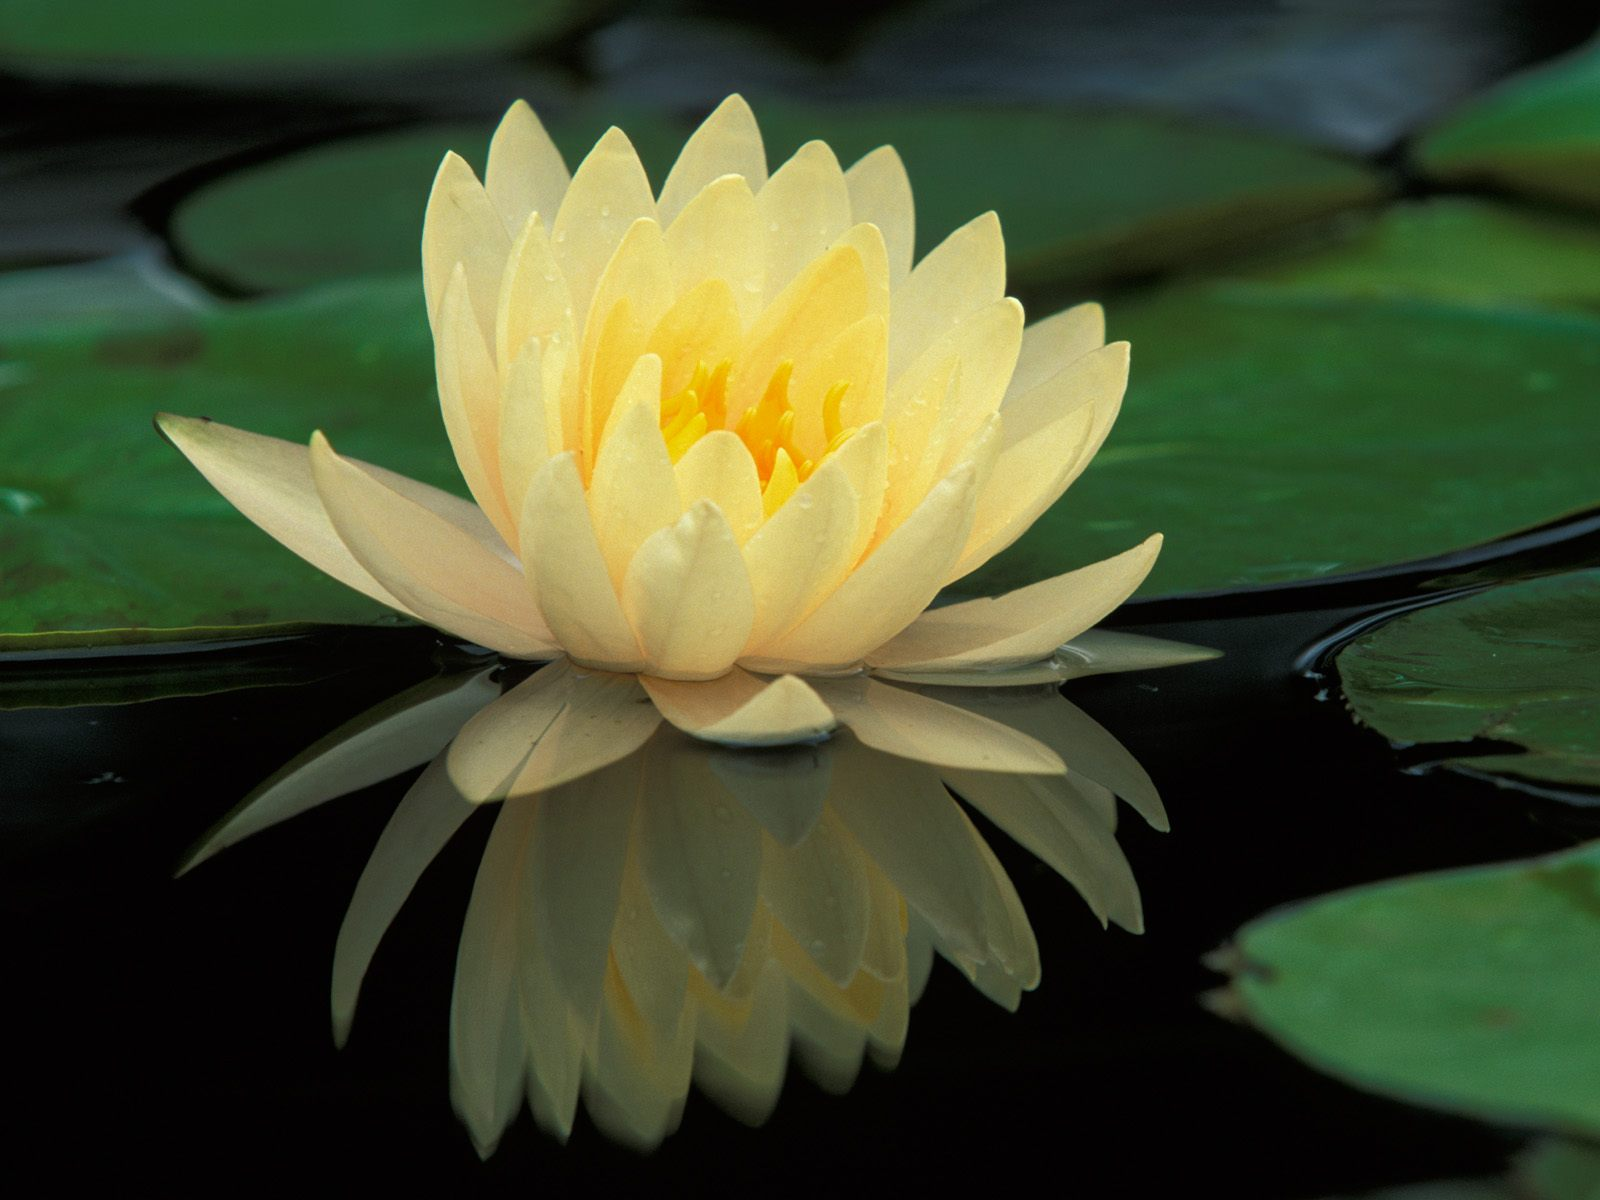 yellow water lily flower - photo #7